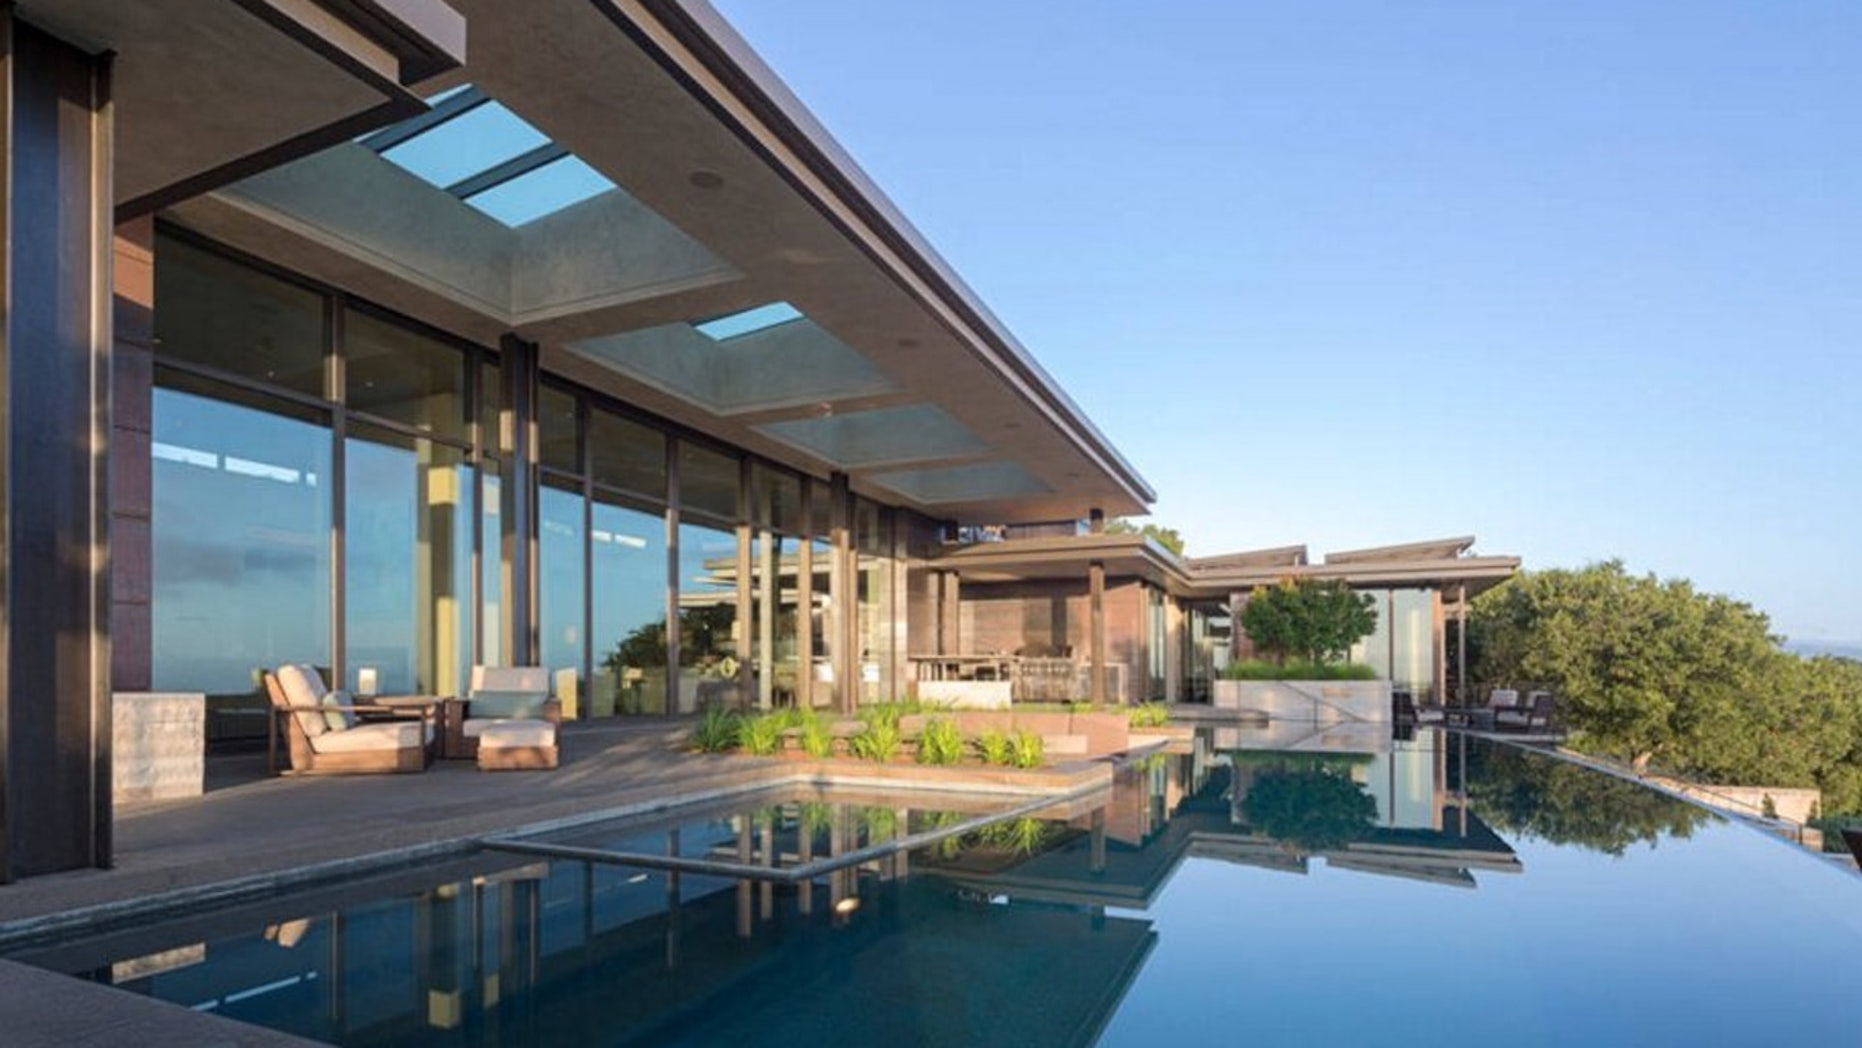 Beyoncé stayed in an epic Airbnb in the Los Altos Hill after Super Bowl 50.